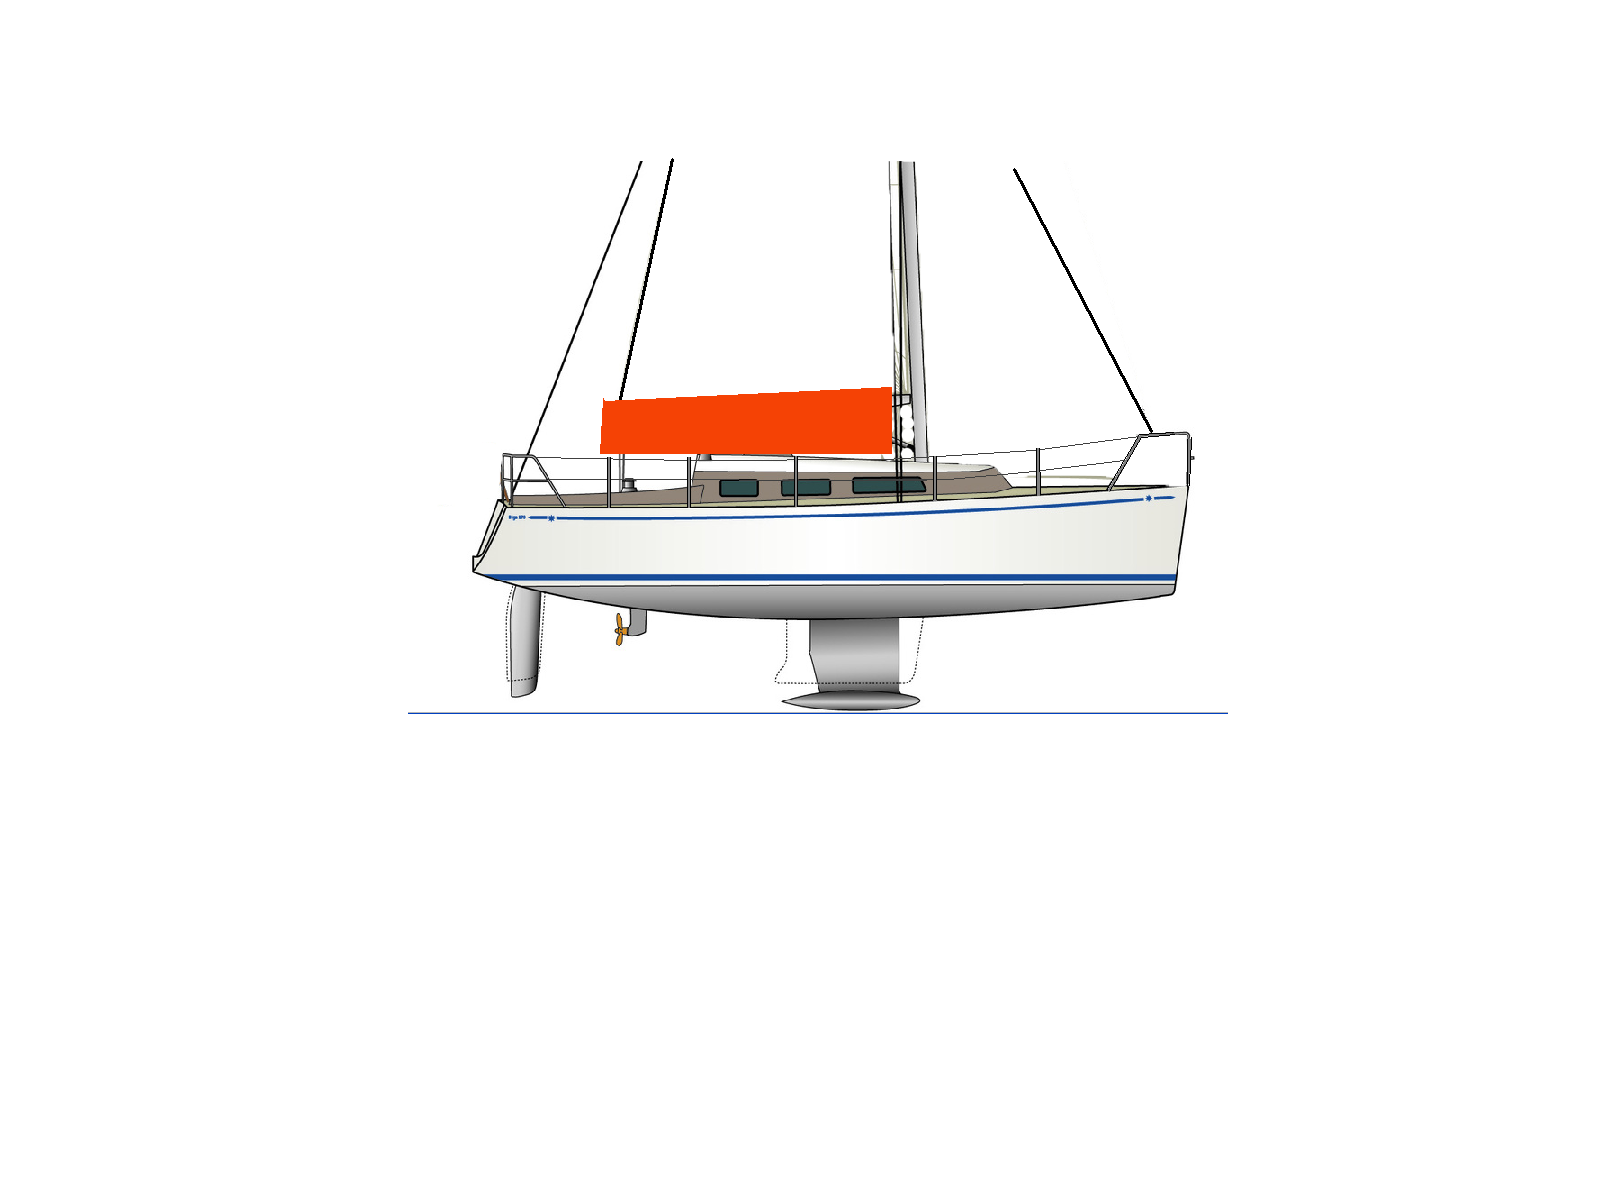 02 04 01 Typ H Segelboot Sonnendach ohne Gest nge.PNG